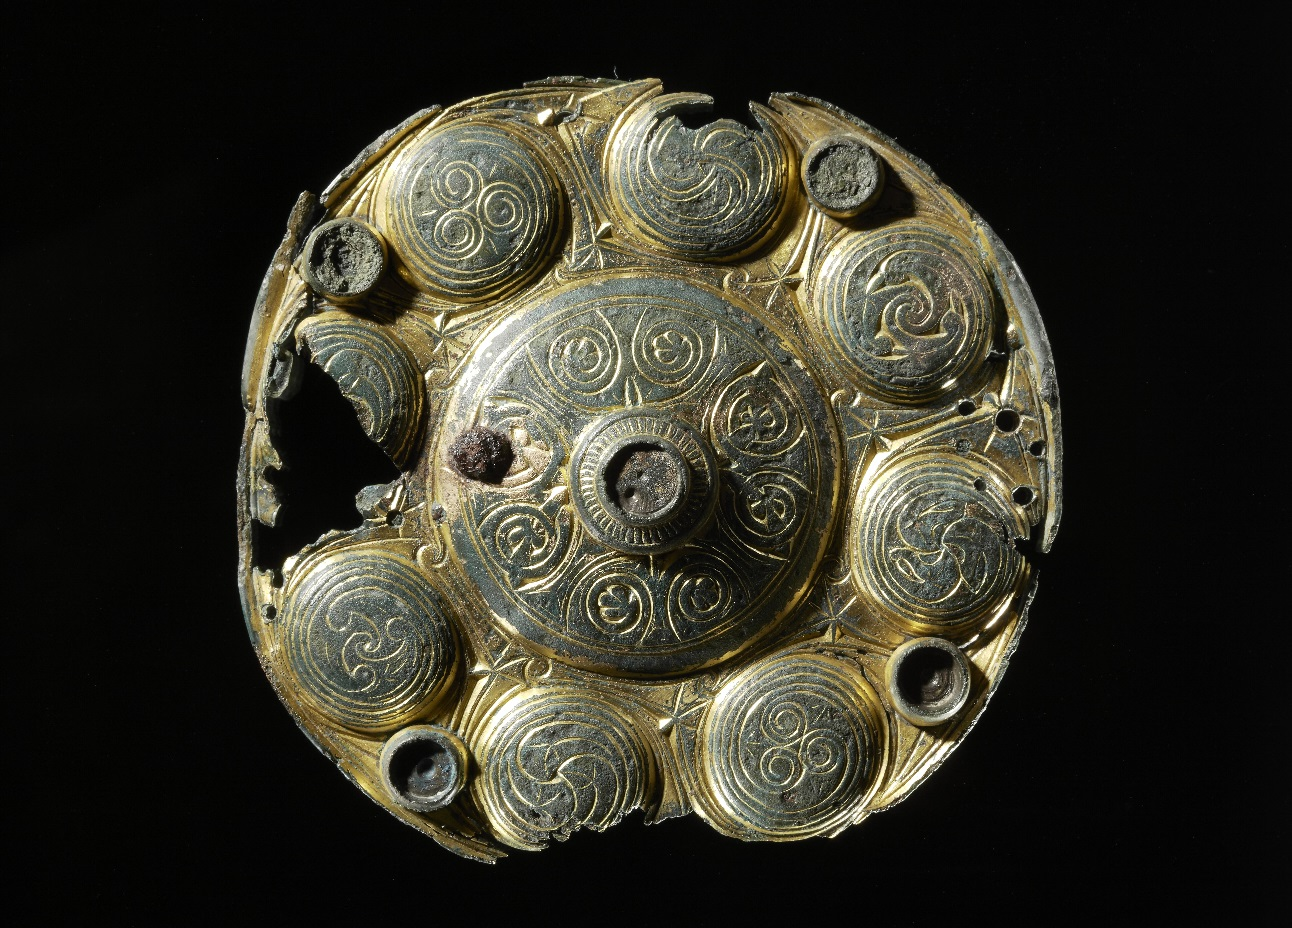 """""""Mounting from a reliquary, produced in Northumbria in the 8th century. The mounting have been modified and was used as a brooch. It was found in a woman's grave from the second part of the 9th century, in Buskerud, Norway """". Credit : Museum of Cultural History"""